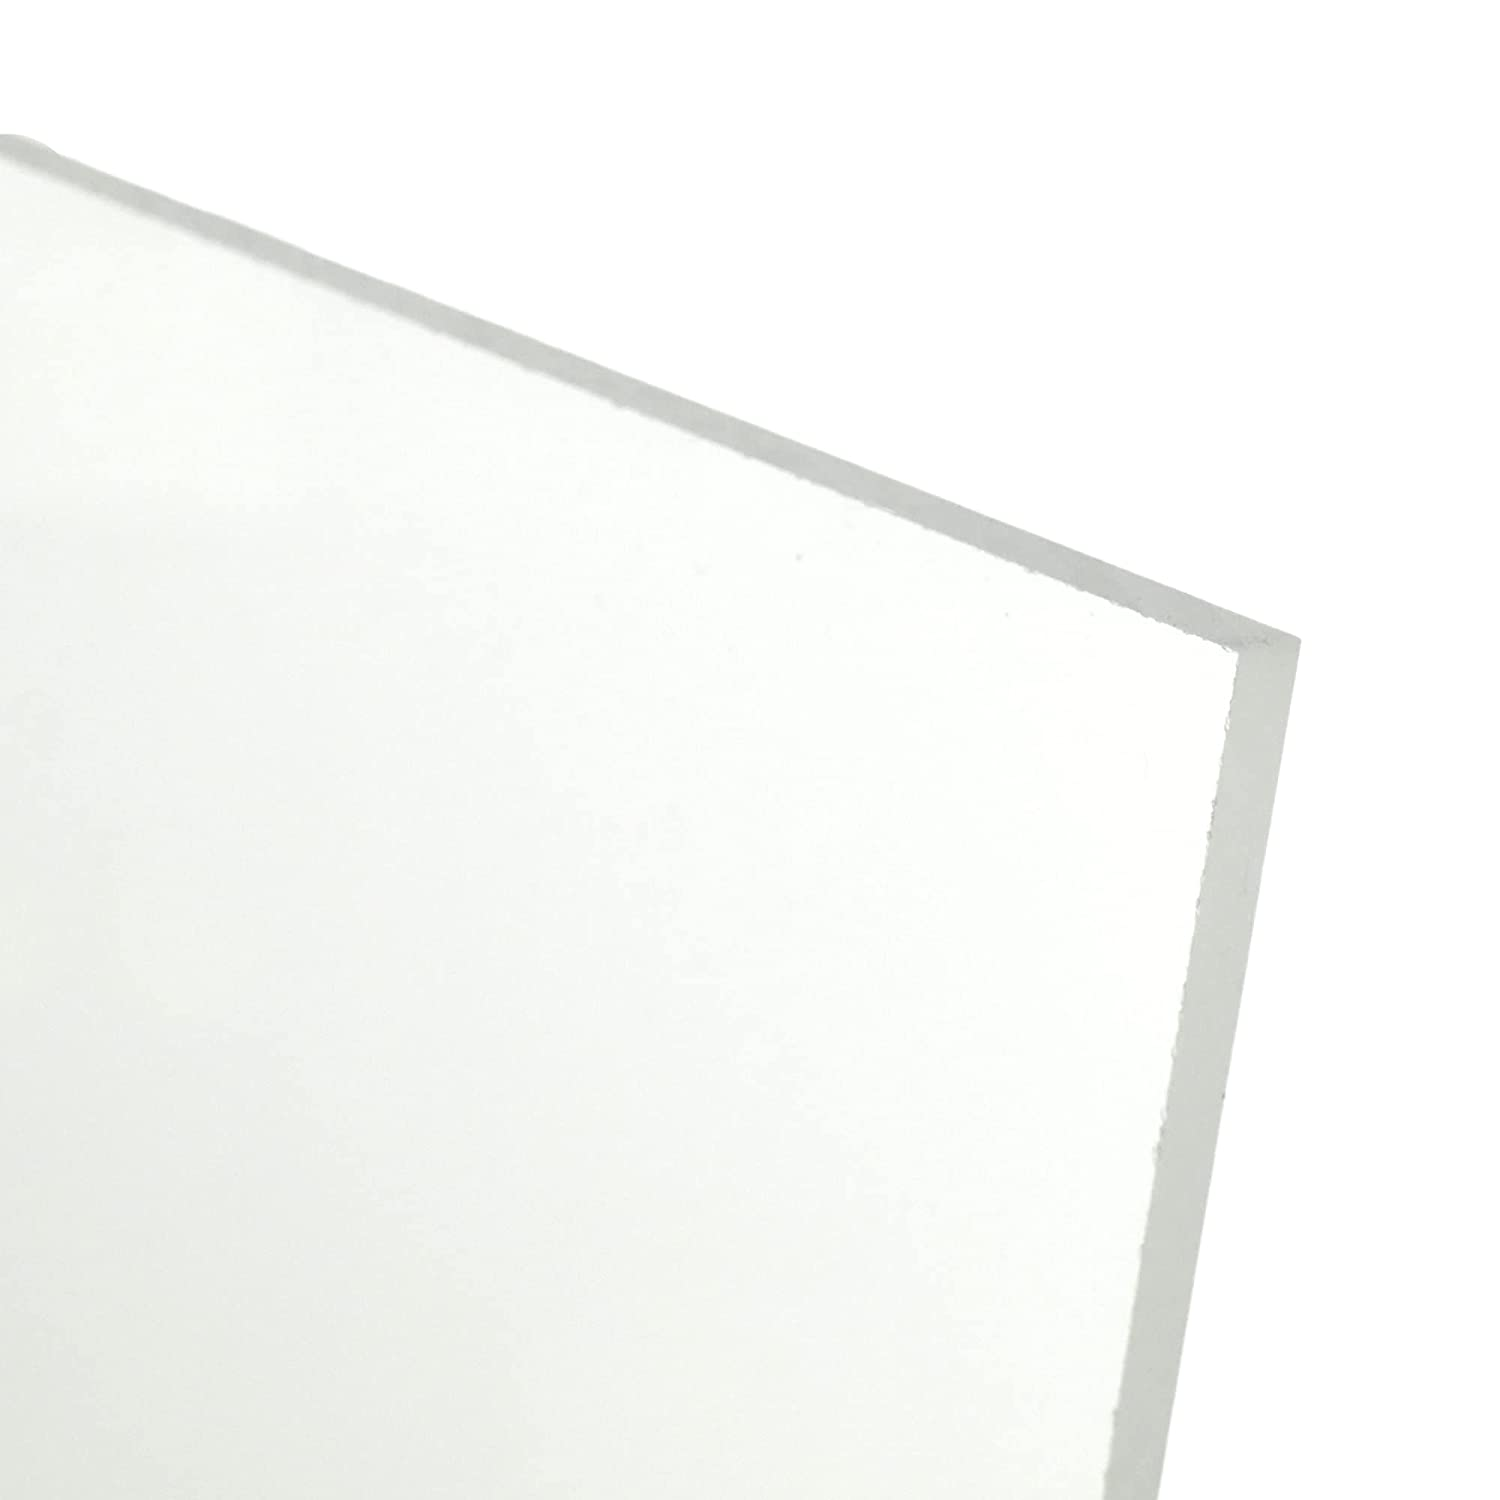 BuyPlastic Frosted Colorless Acrylic 2021 model Plexiglass Plastic Sheet Very popular